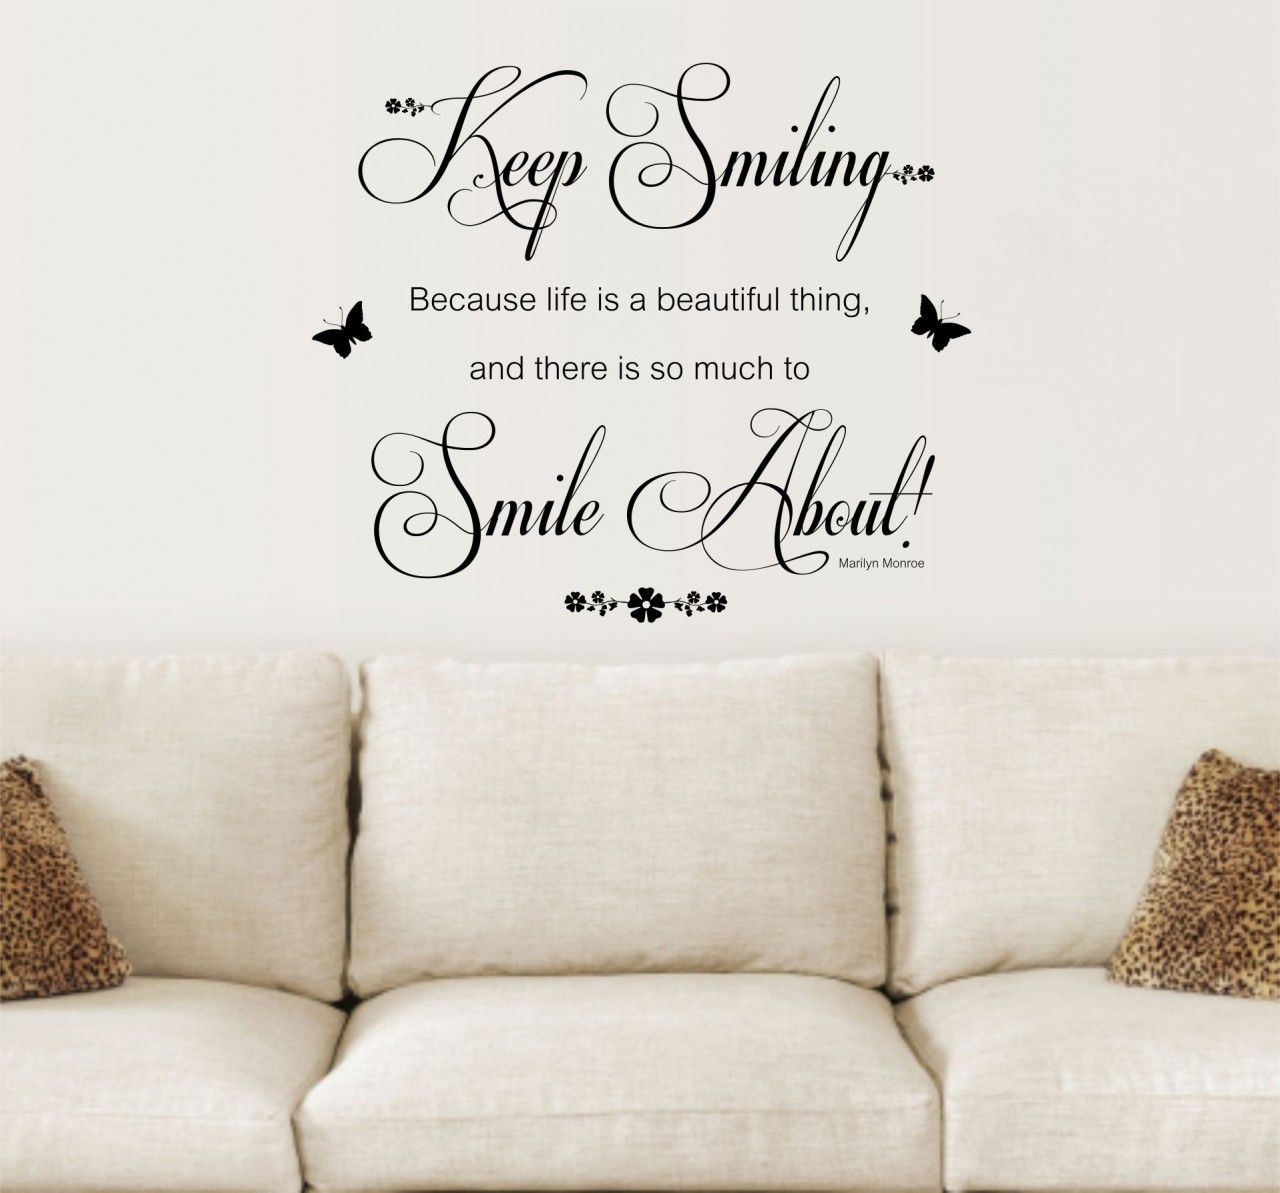 Jalaluddin rumi wall sticker rumi inspirational quote wall decals jalaluddin rumi wall sticker rumi inspirational quote wall decals vinyl decor d2 vinyl decor quote wall decals and quote wall amipublicfo Image collections